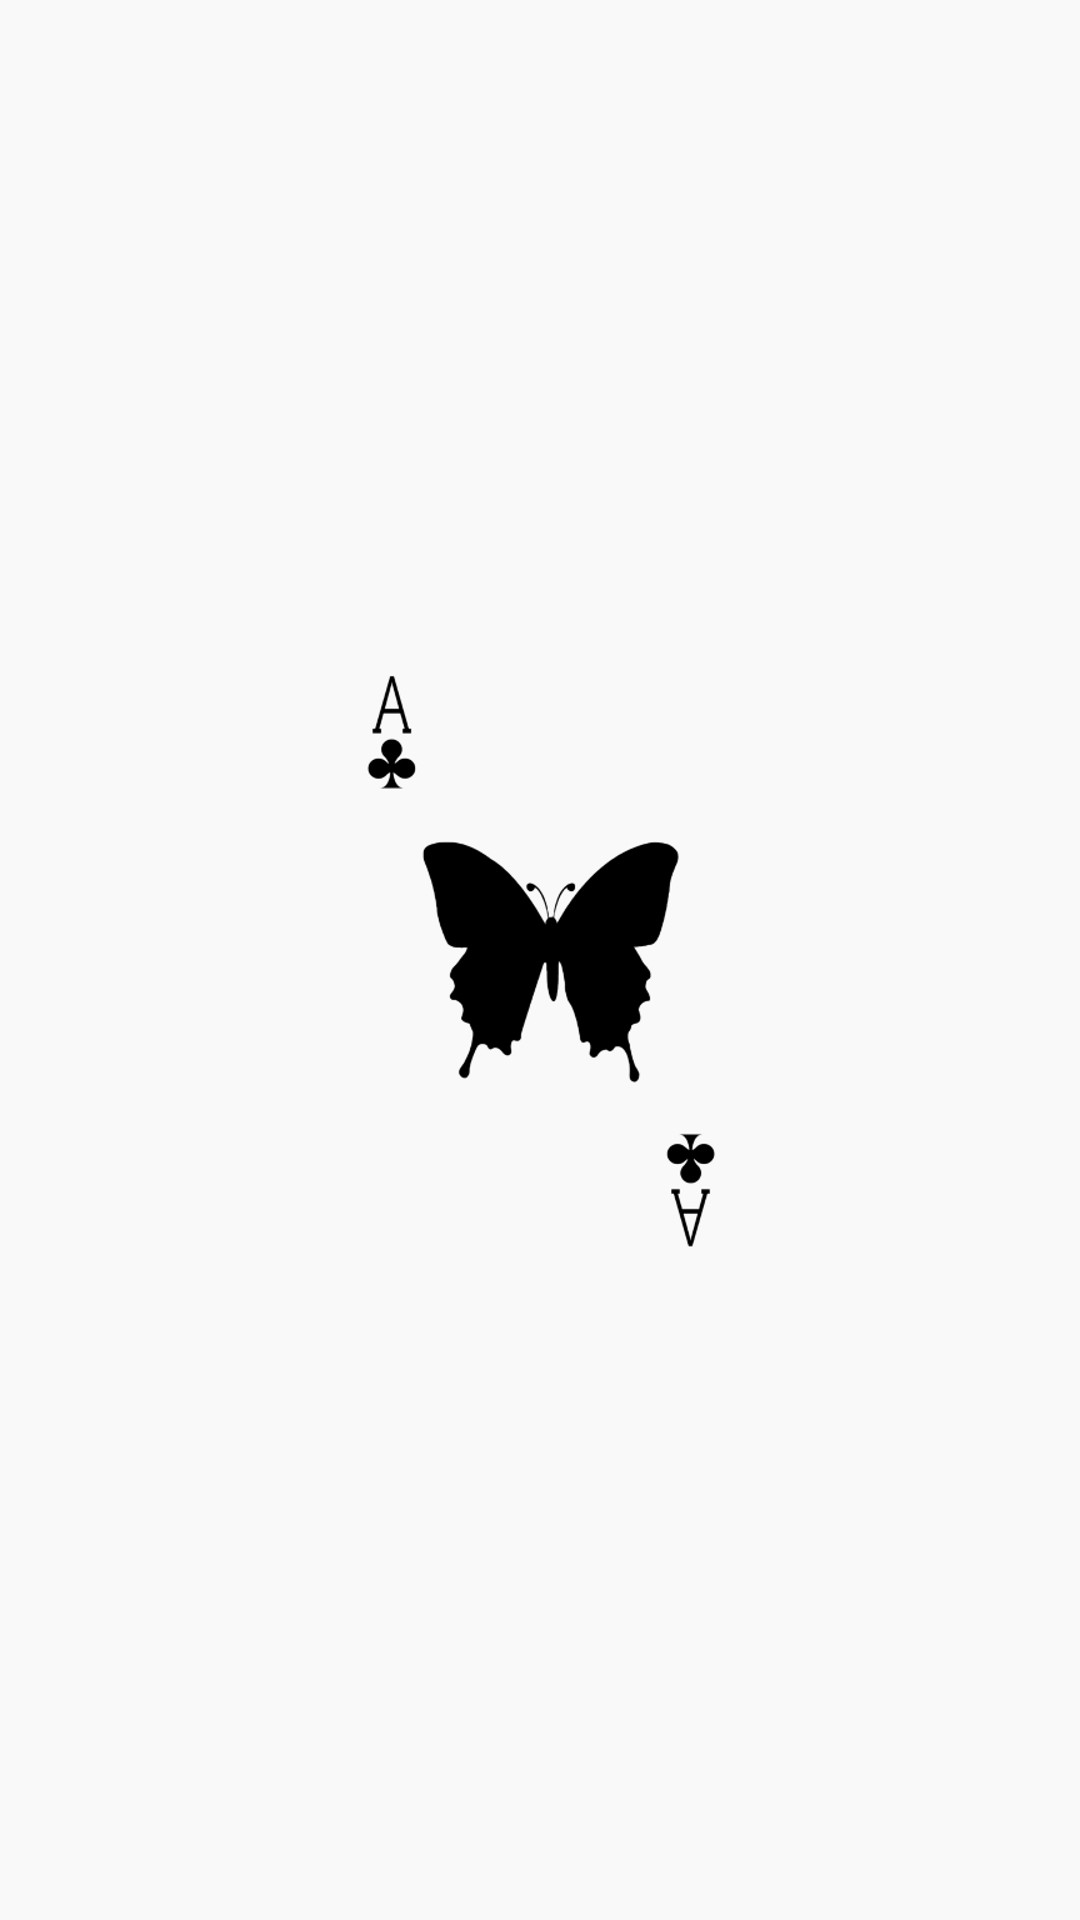 Aesthetic Butterfly iphone 8 plus wallpaper